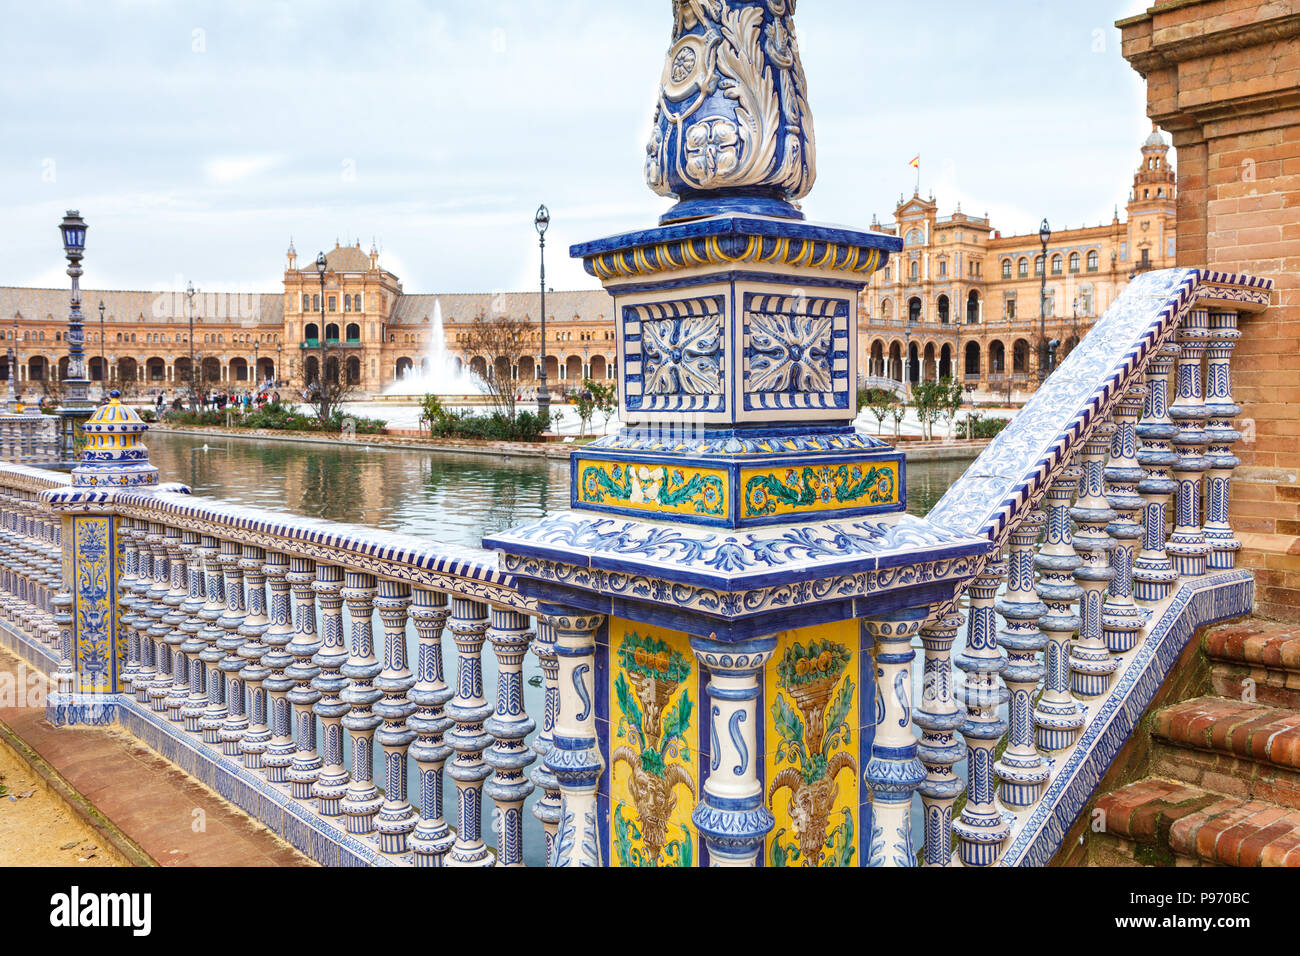 Balustrade on Plaza de Espana (Spain Square) in Seville, Andalusia, Spain.  Decorated with mixing elements of the Renaissance Revival and Moorish Revi - Stock Image